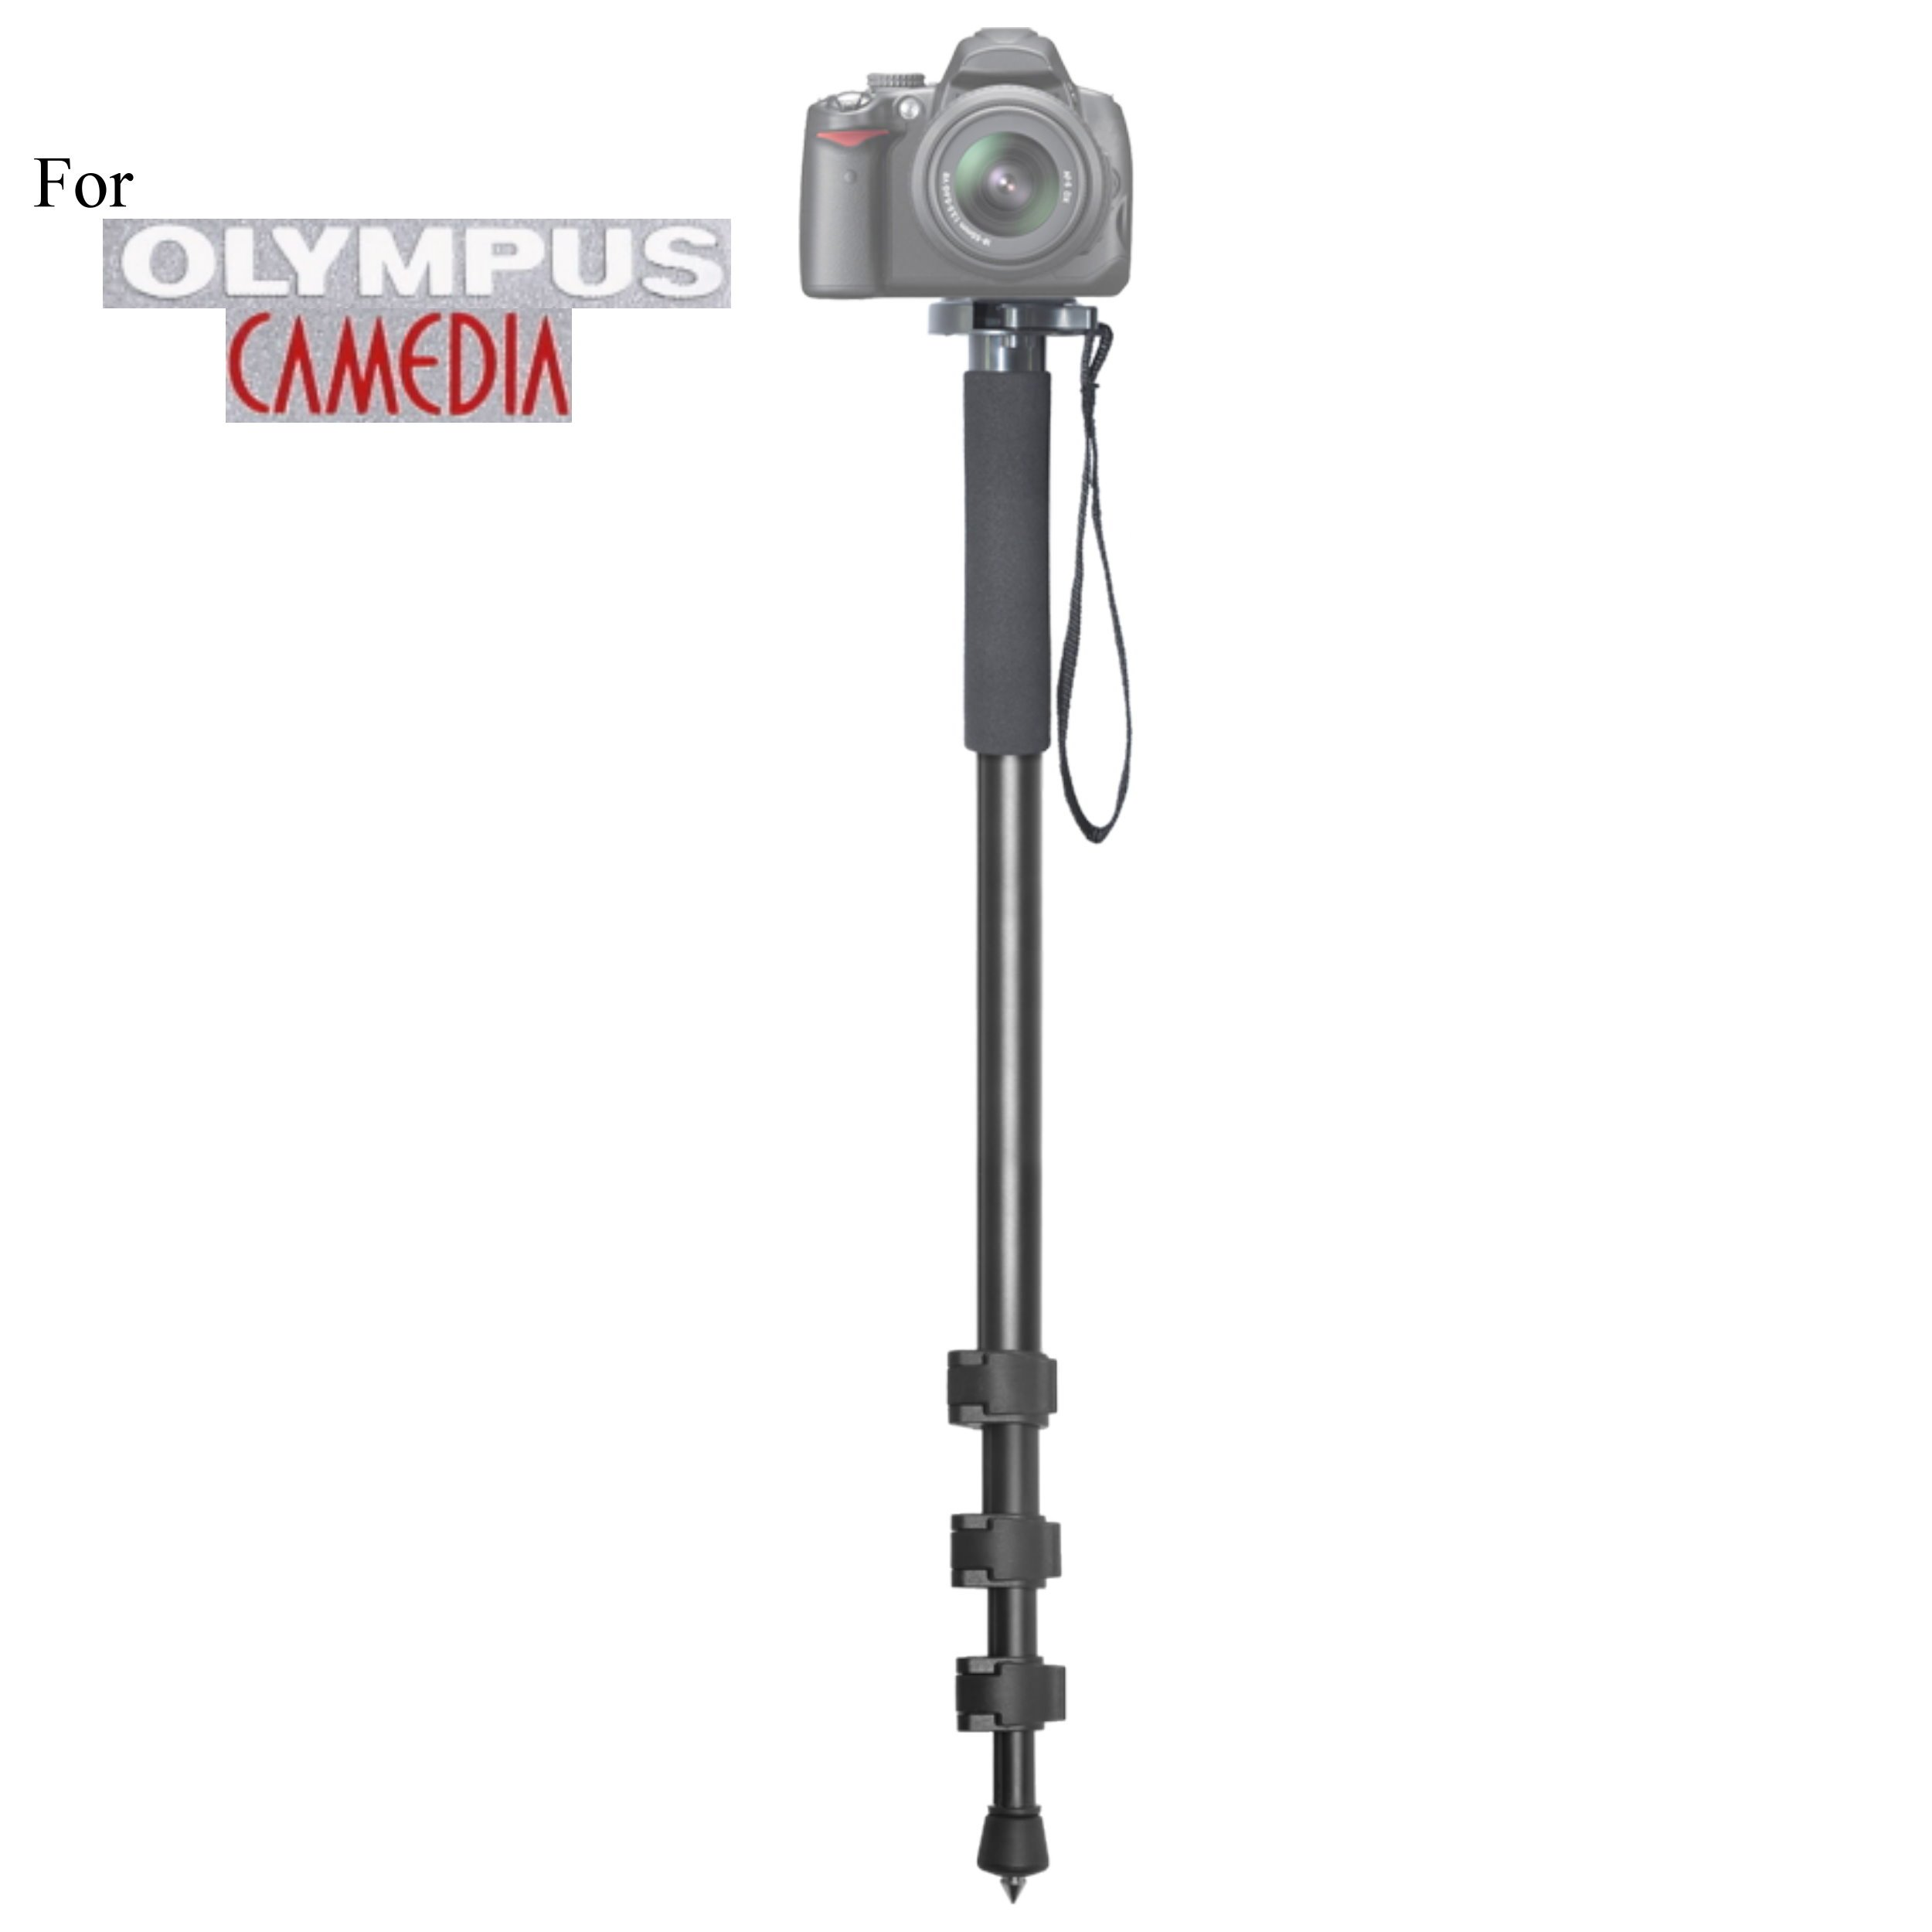 Versatile 72'' Monopod Camera Stick + Quick Release for Olympus C-5050 Zoom, C-5060 Wide Zoom, C-7070 Wide Zoom, C-750 UZ, C-8080 Wide Zoom Digital Cameras: Collapsible Mono pod, Mono-pod